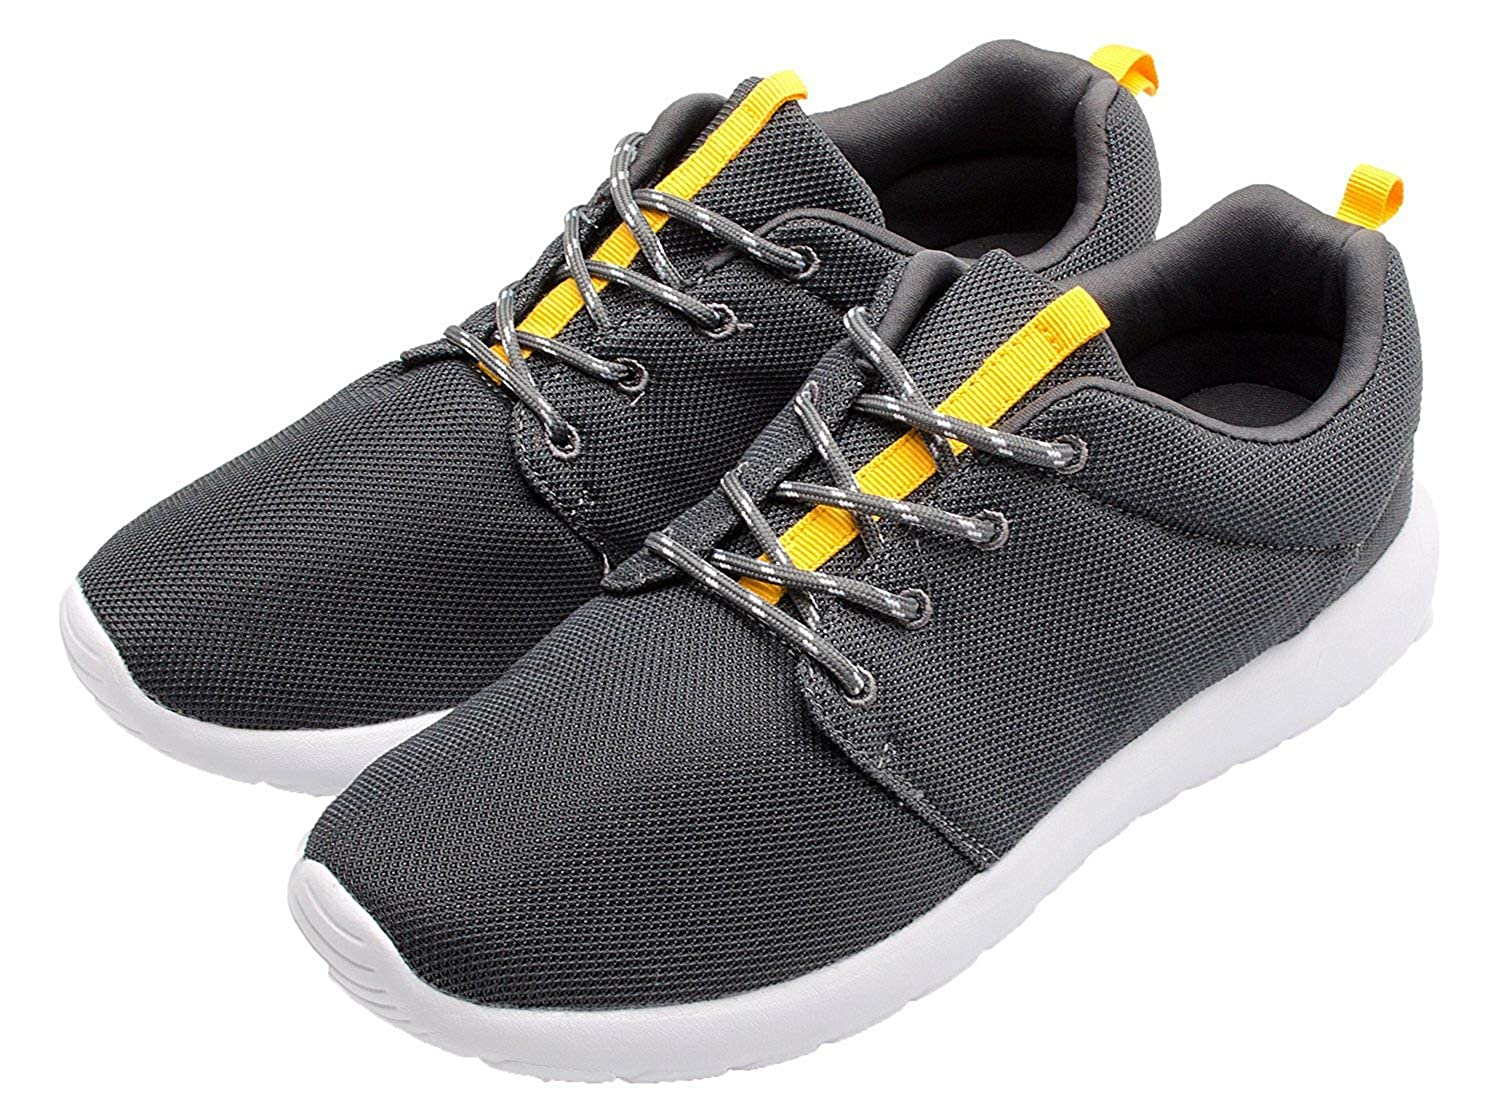 Duckmole Womens Running Shoes Lightweight Sports Athletic Fashion Sneaker